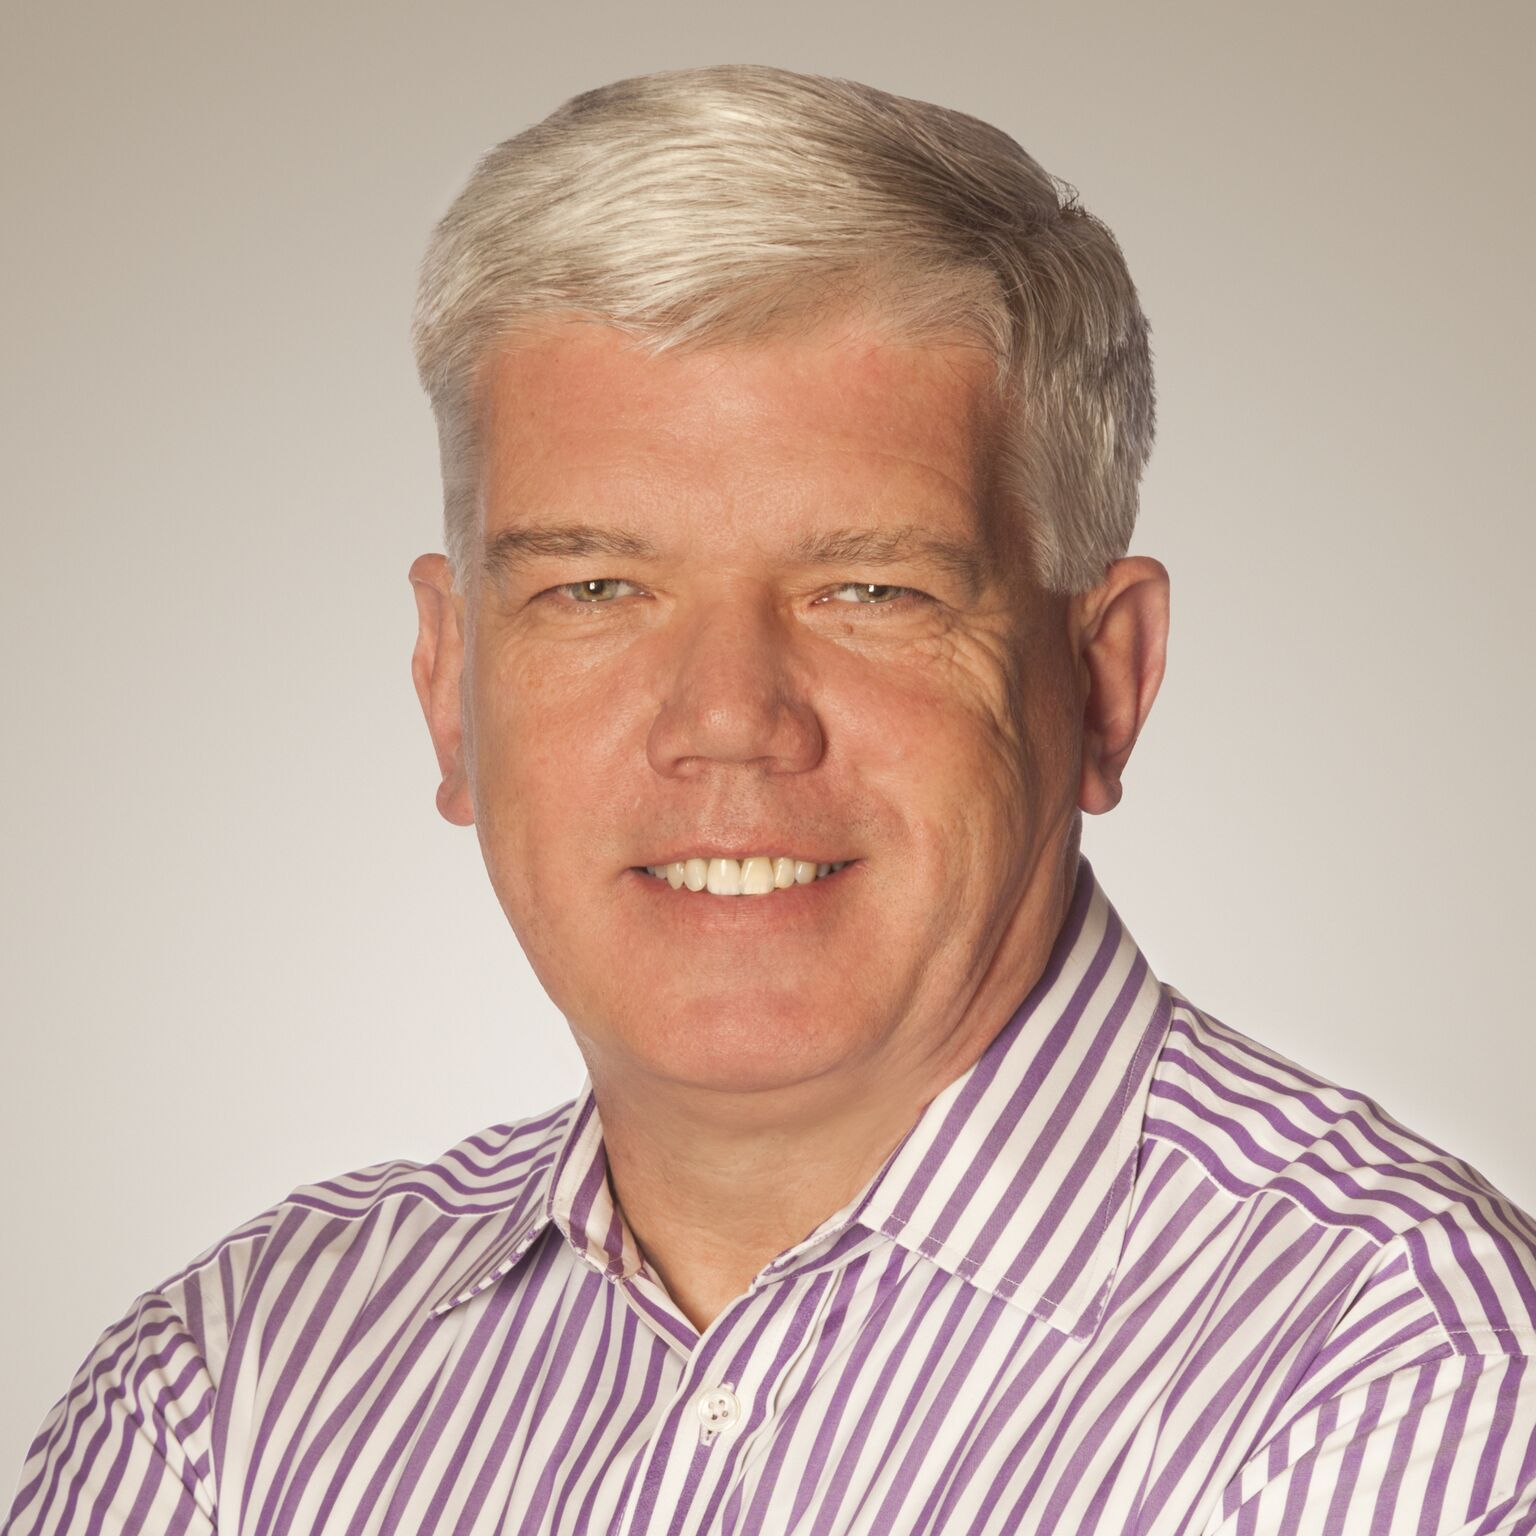 Jonathan White, Executive Vice President of R&D, PatientsLikeMe (Photo: Business Wire)